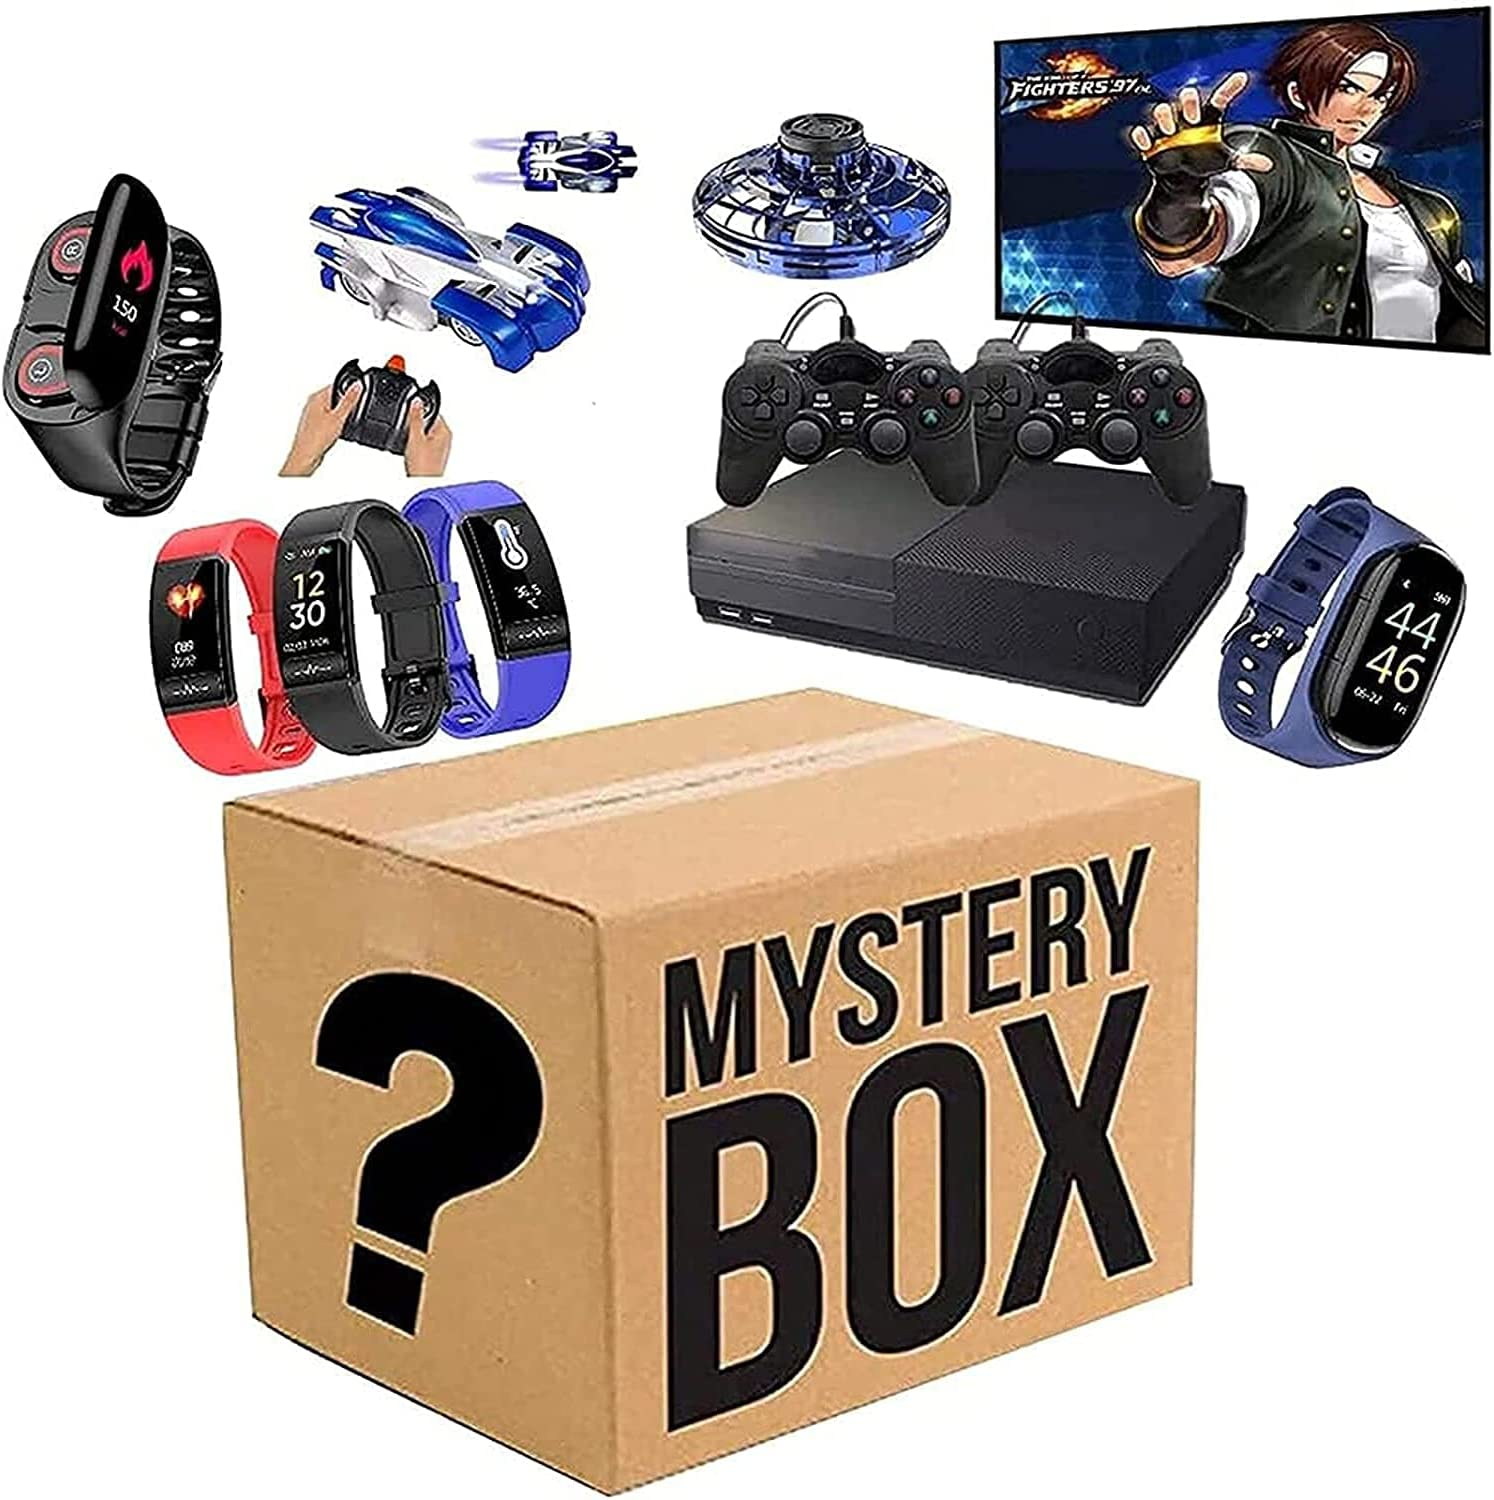 Mystery Box Electronic Lucky Super Boxes Blind Direct stock Special Campaign discount Coste